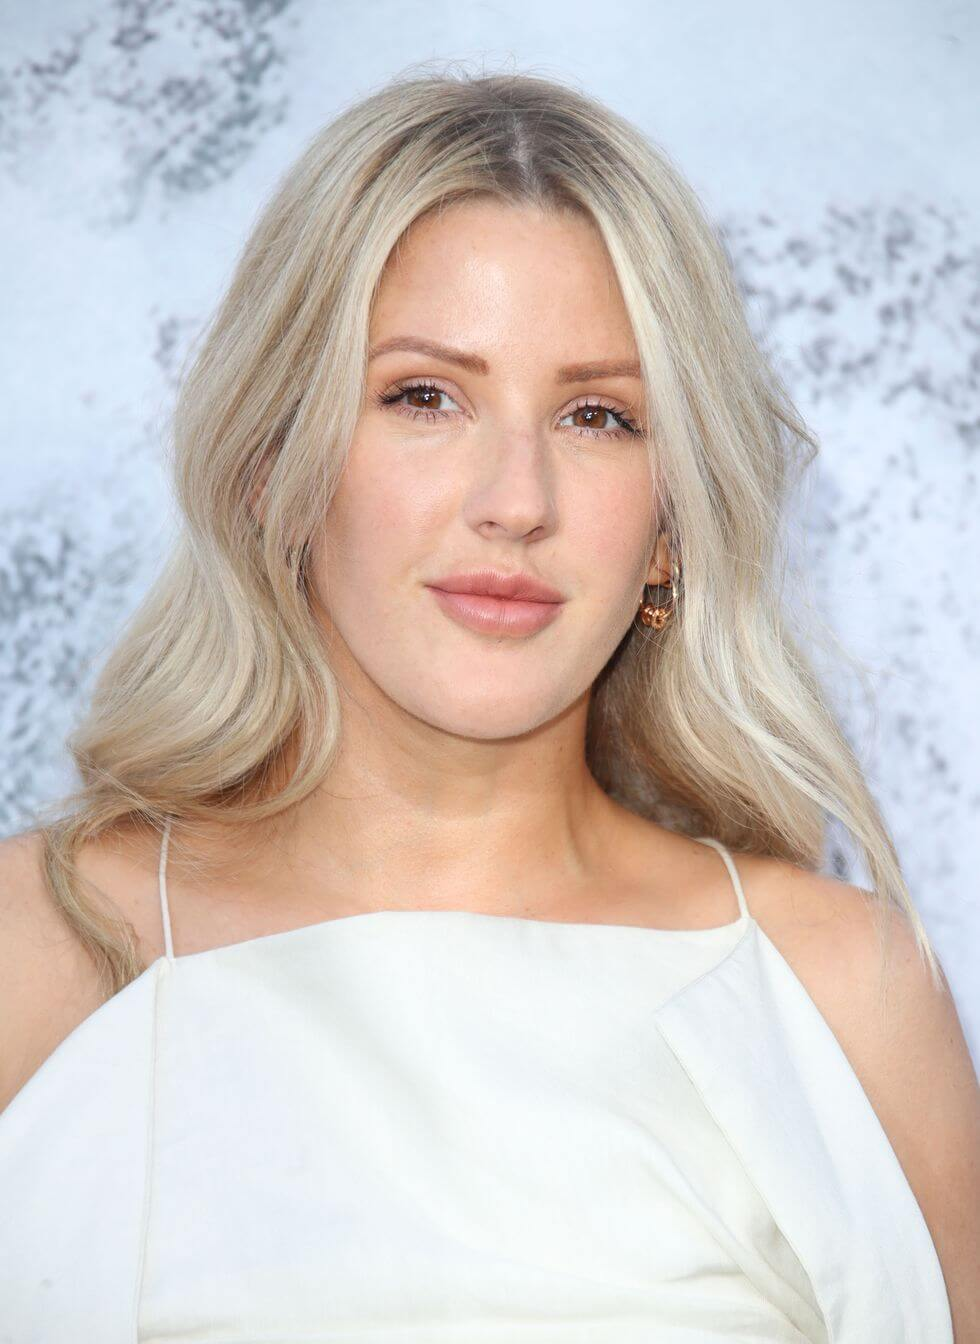 celebrities don't drink alcohol_Ellie Goulding